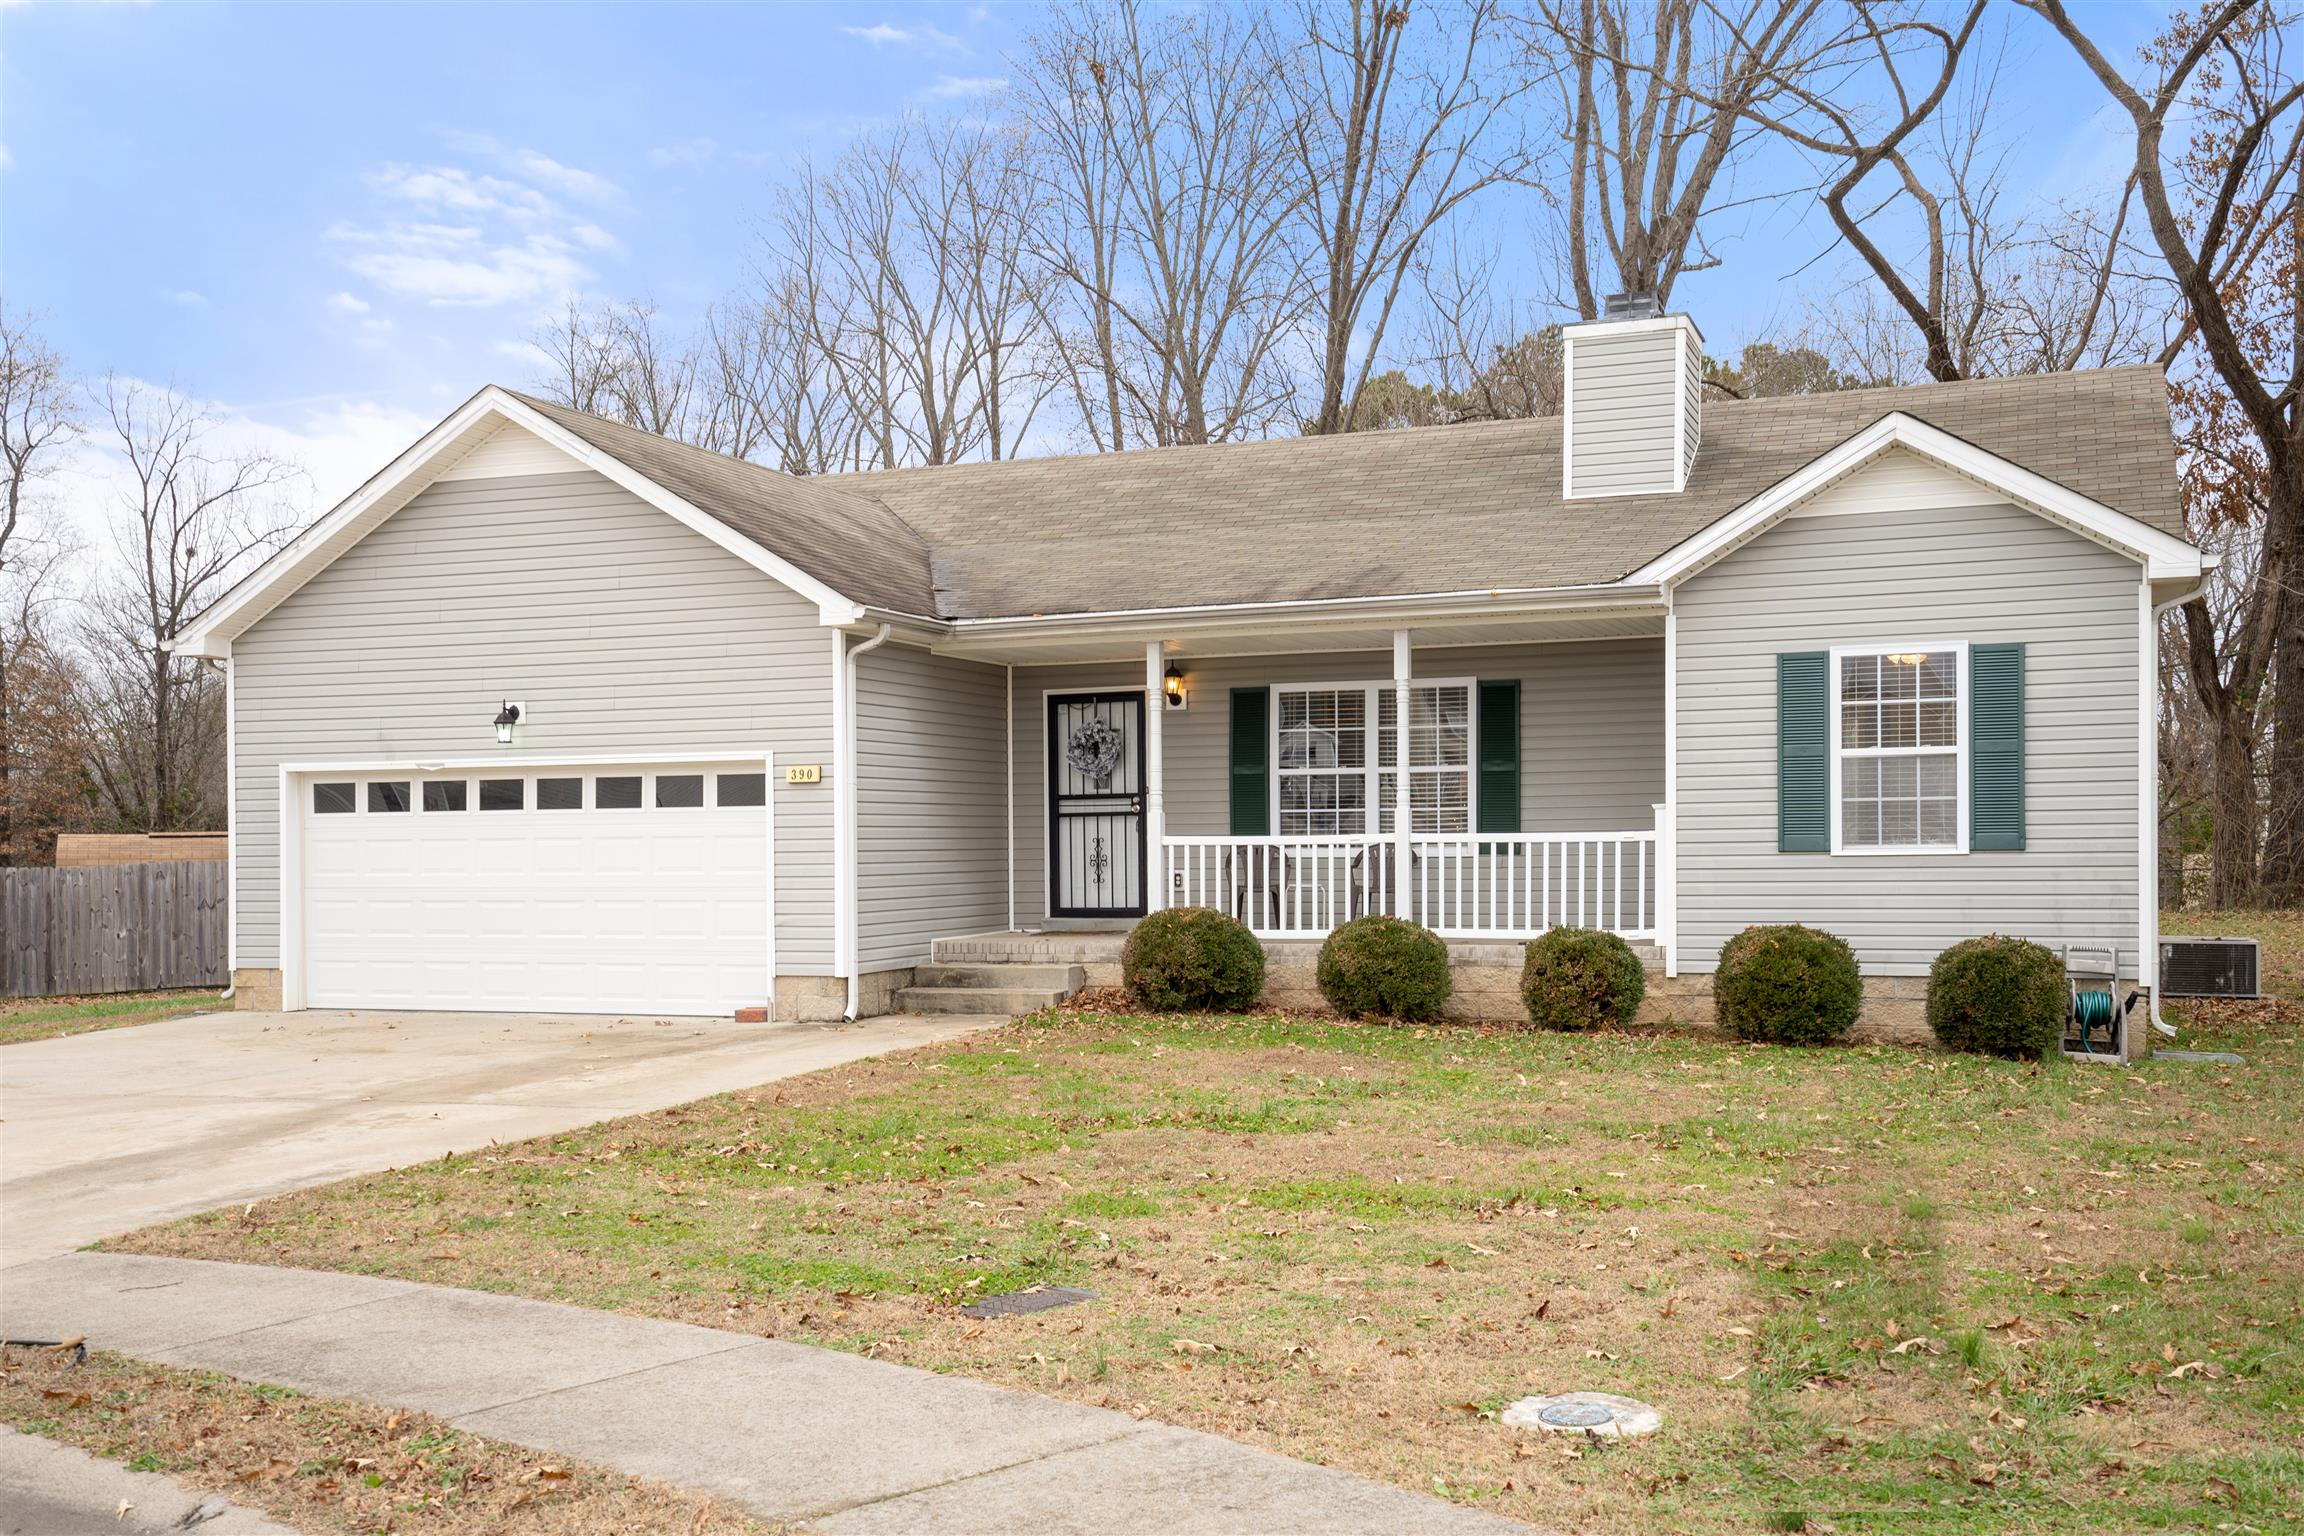 390 Paris Dr, Fort Campbell in Montgomery County County, TN 37042 Home for Sale